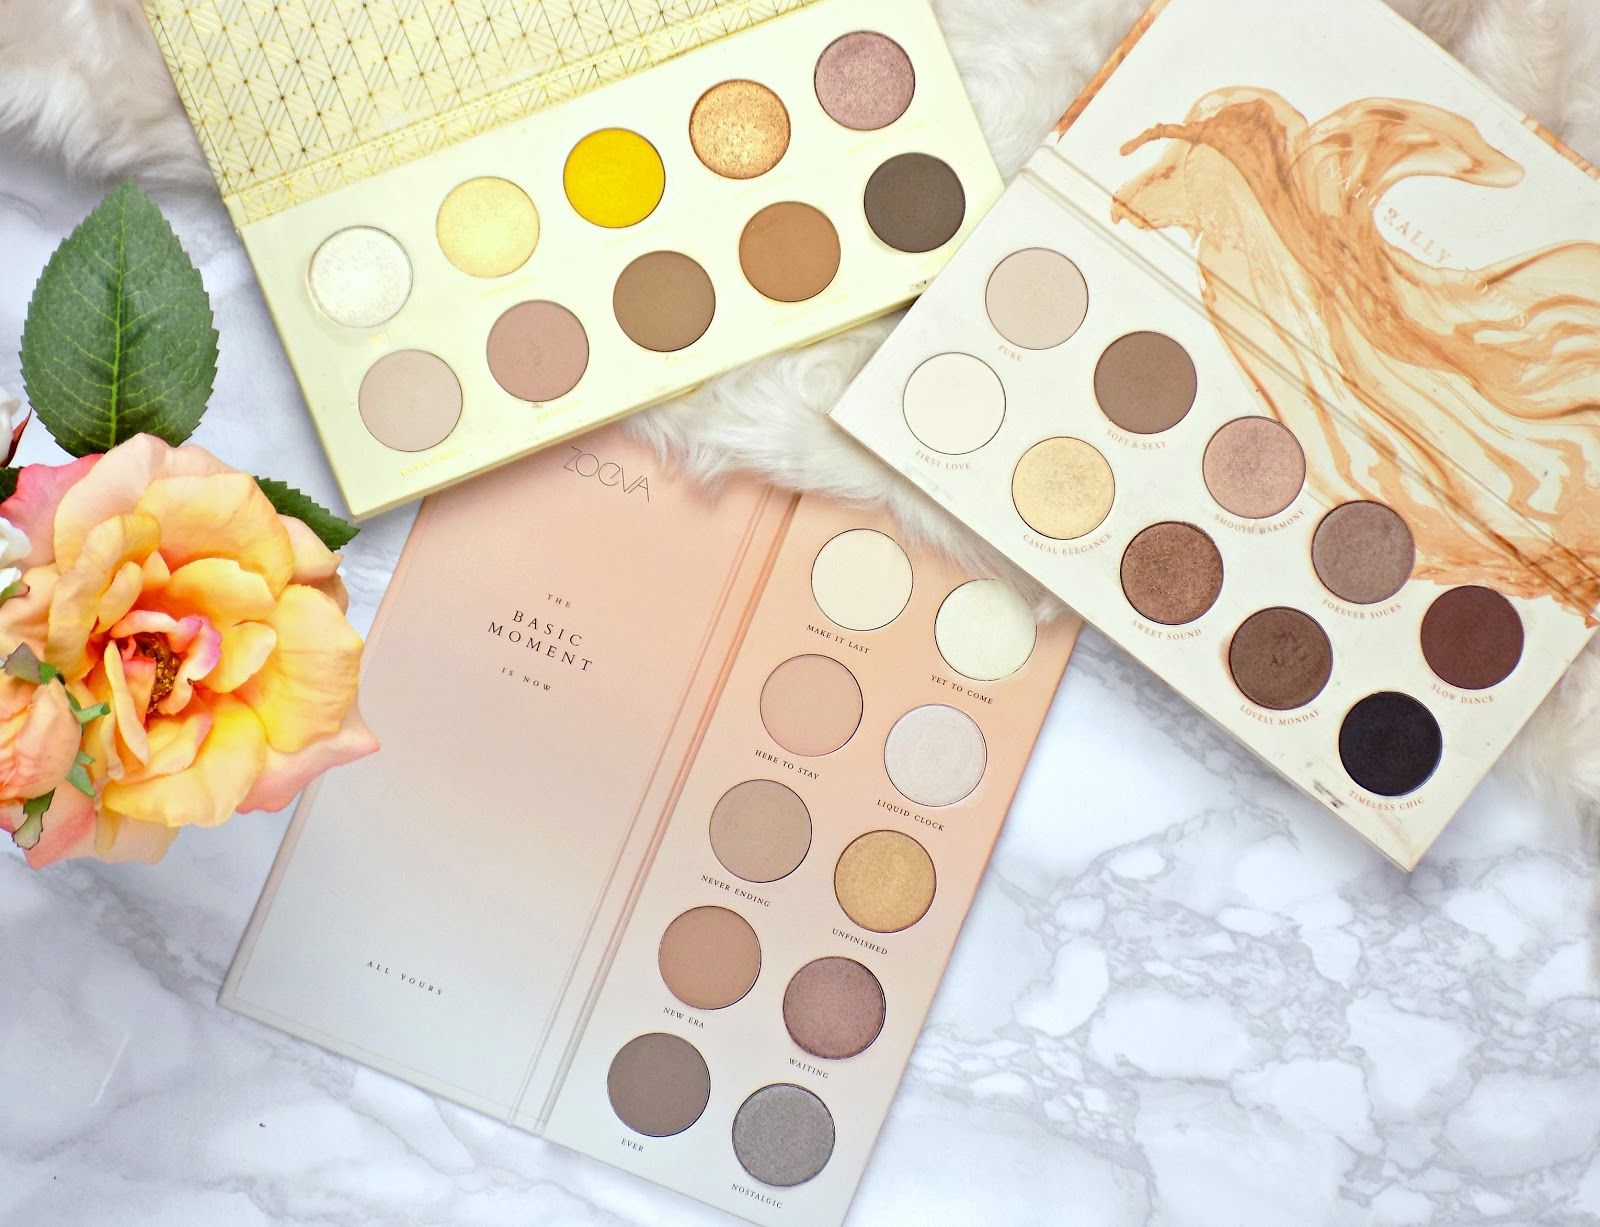 Zoeva neutral eyeshadow palettes